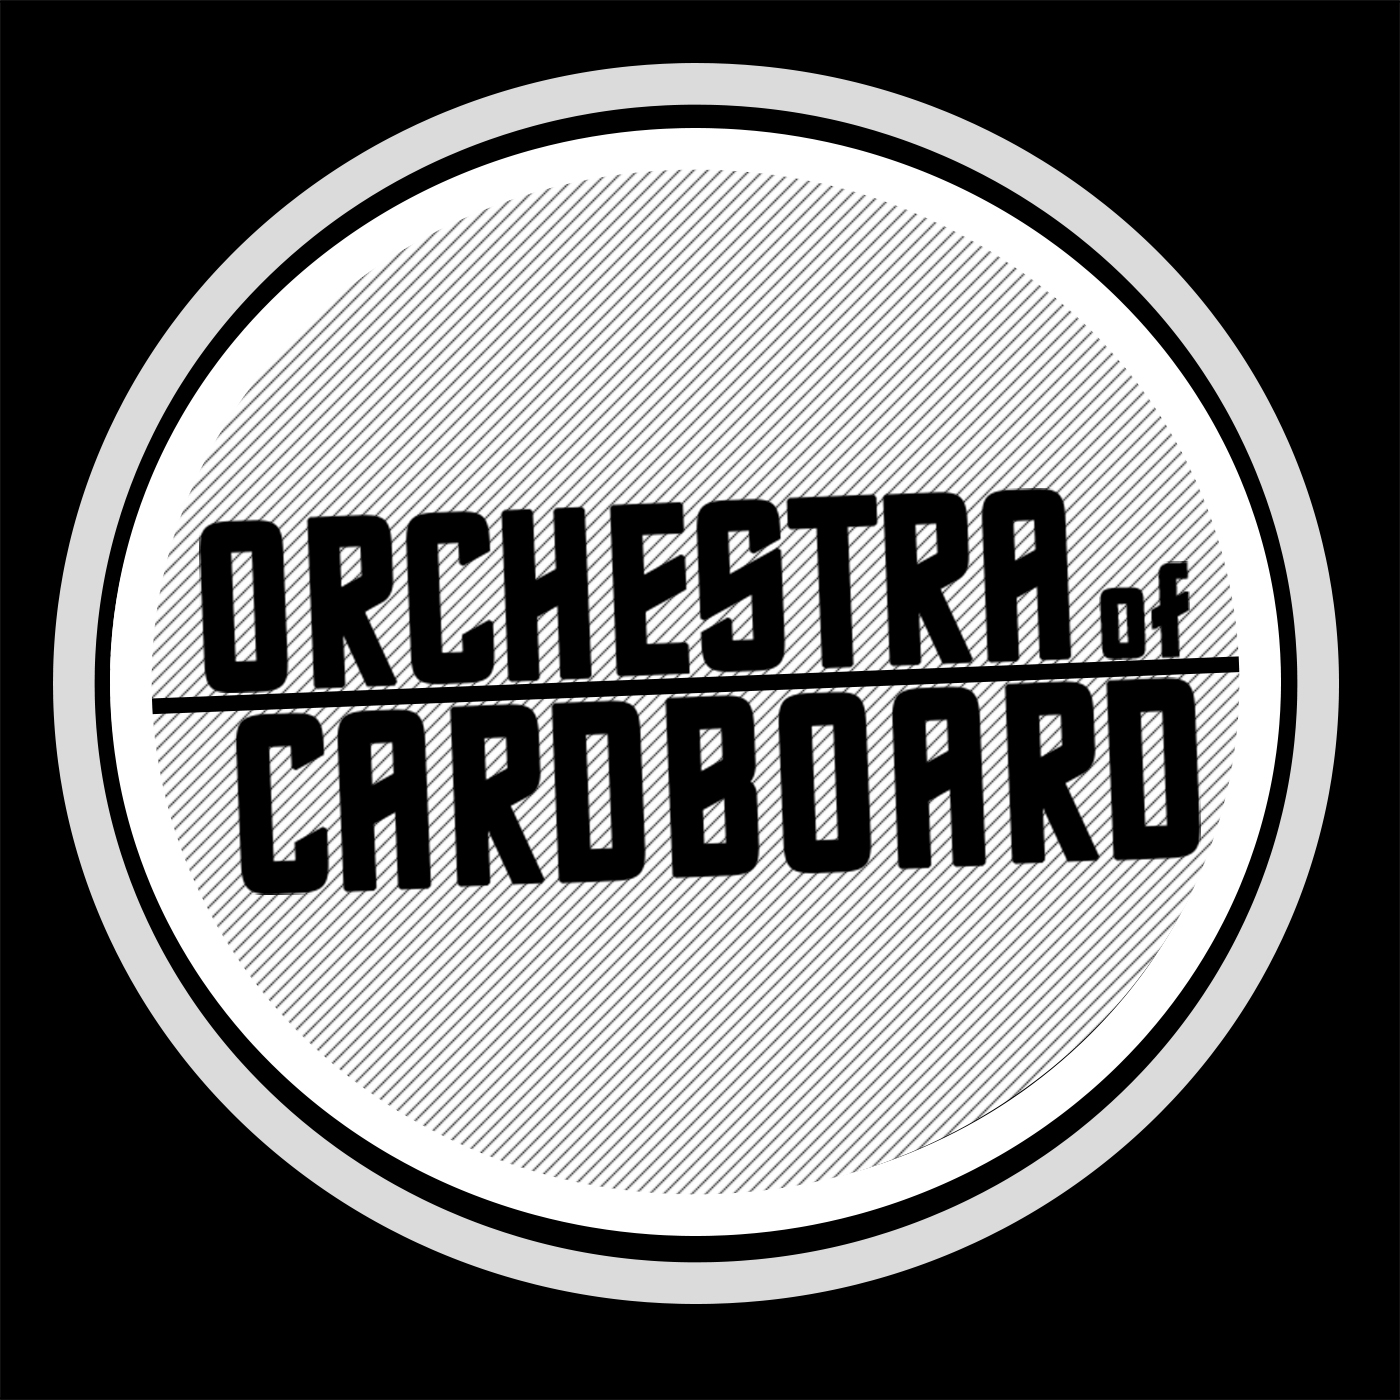 The Orchestra of Cardboard